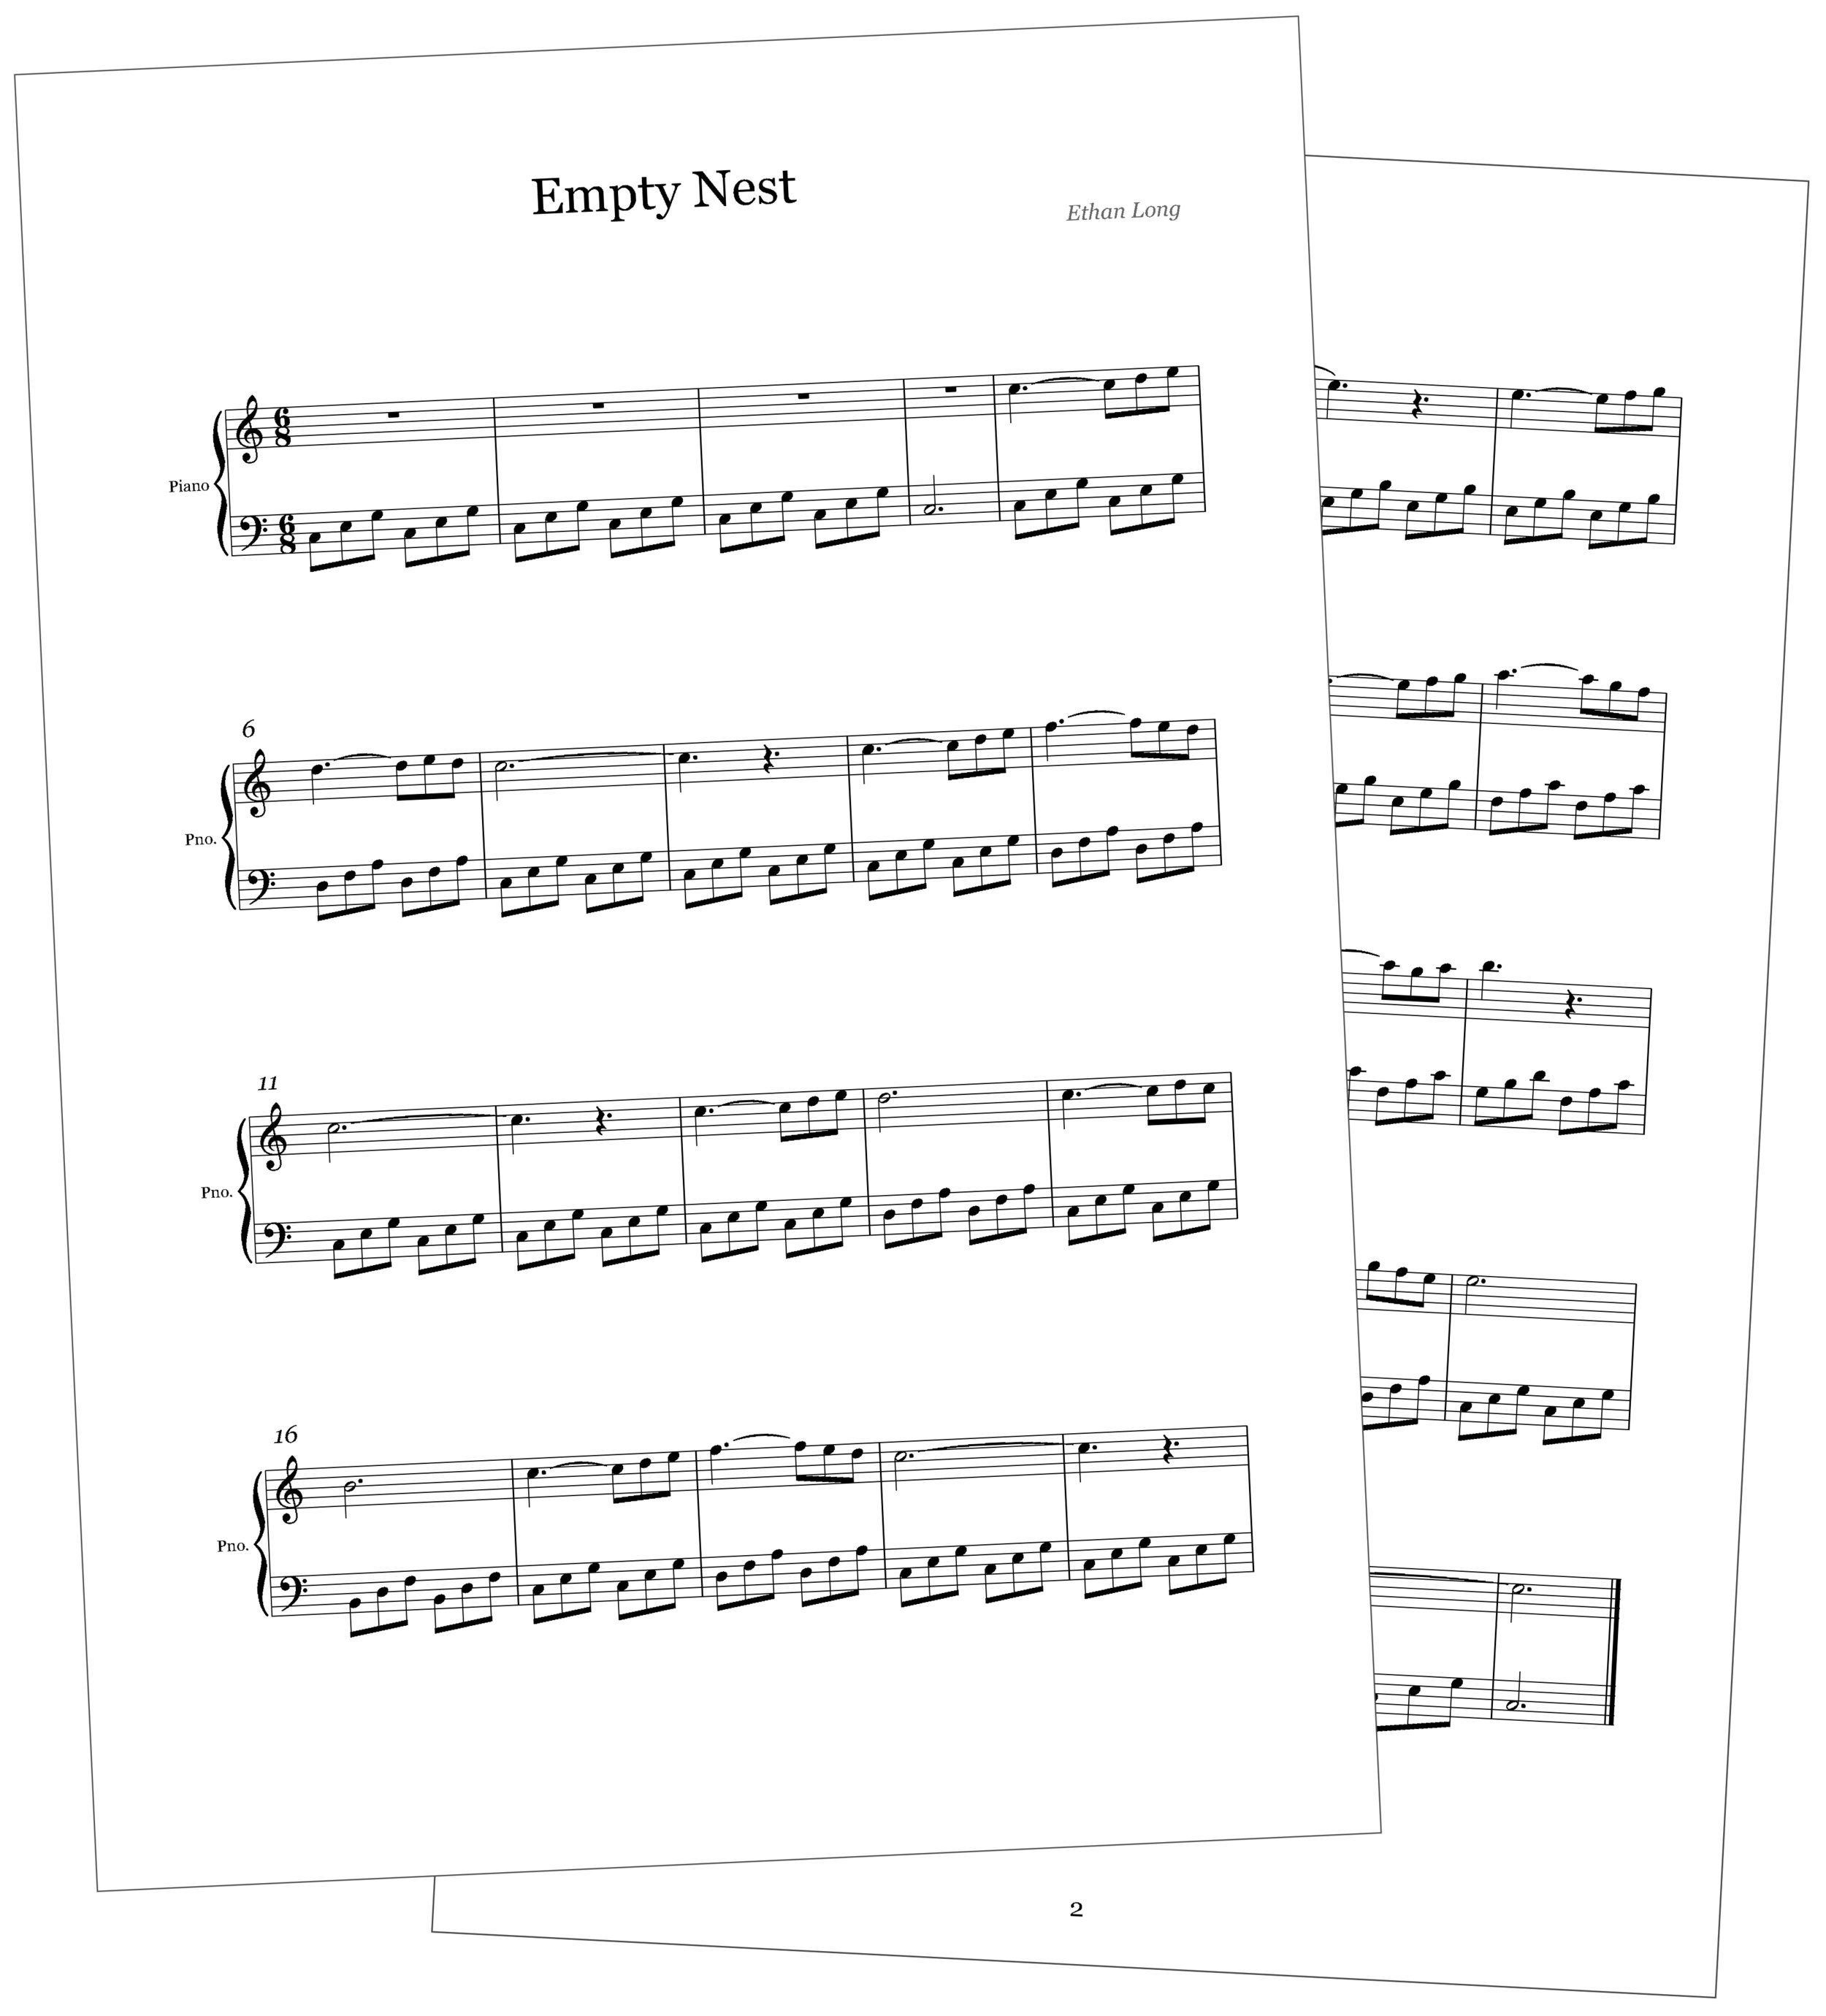 Music by Ethan Long, Transposed by Carson Long